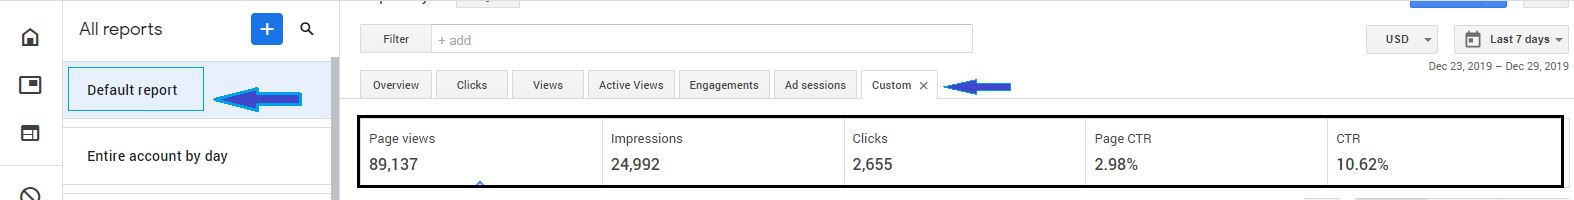 How to check the Page CTR and Impression CTR in google adsense